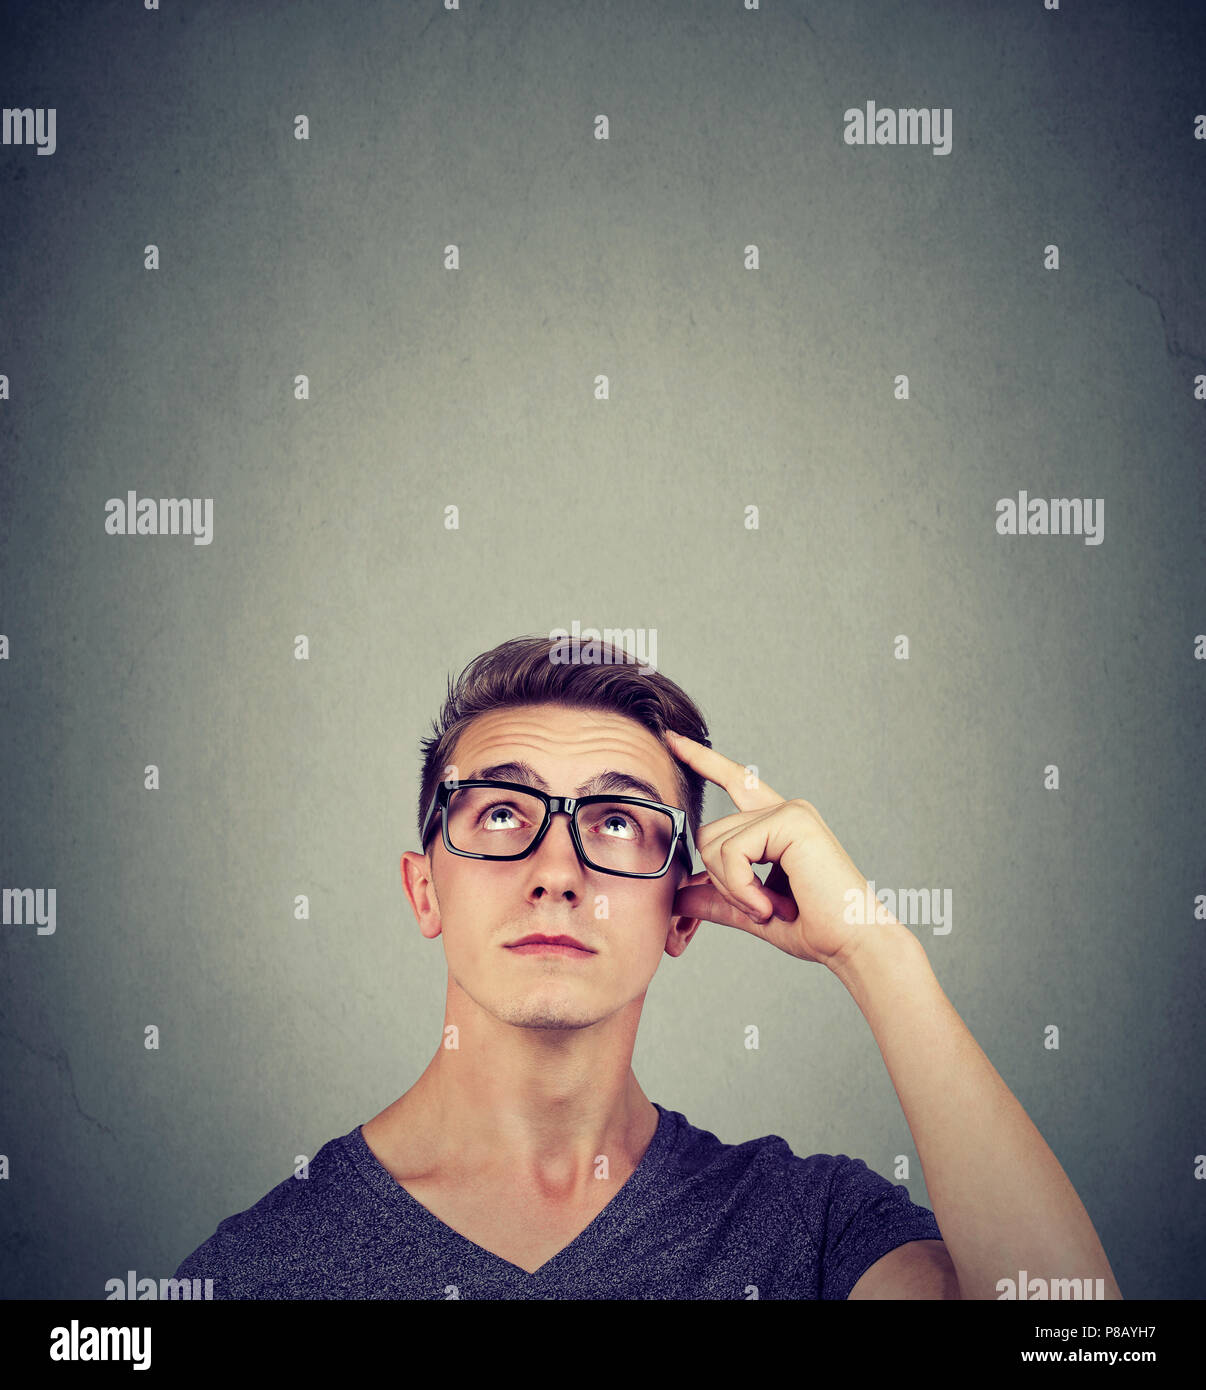 Portrait doubtful thinking young man bewildered scratching his head seeks a solution looking up isolated on wall background. Human face expression - Stock Image